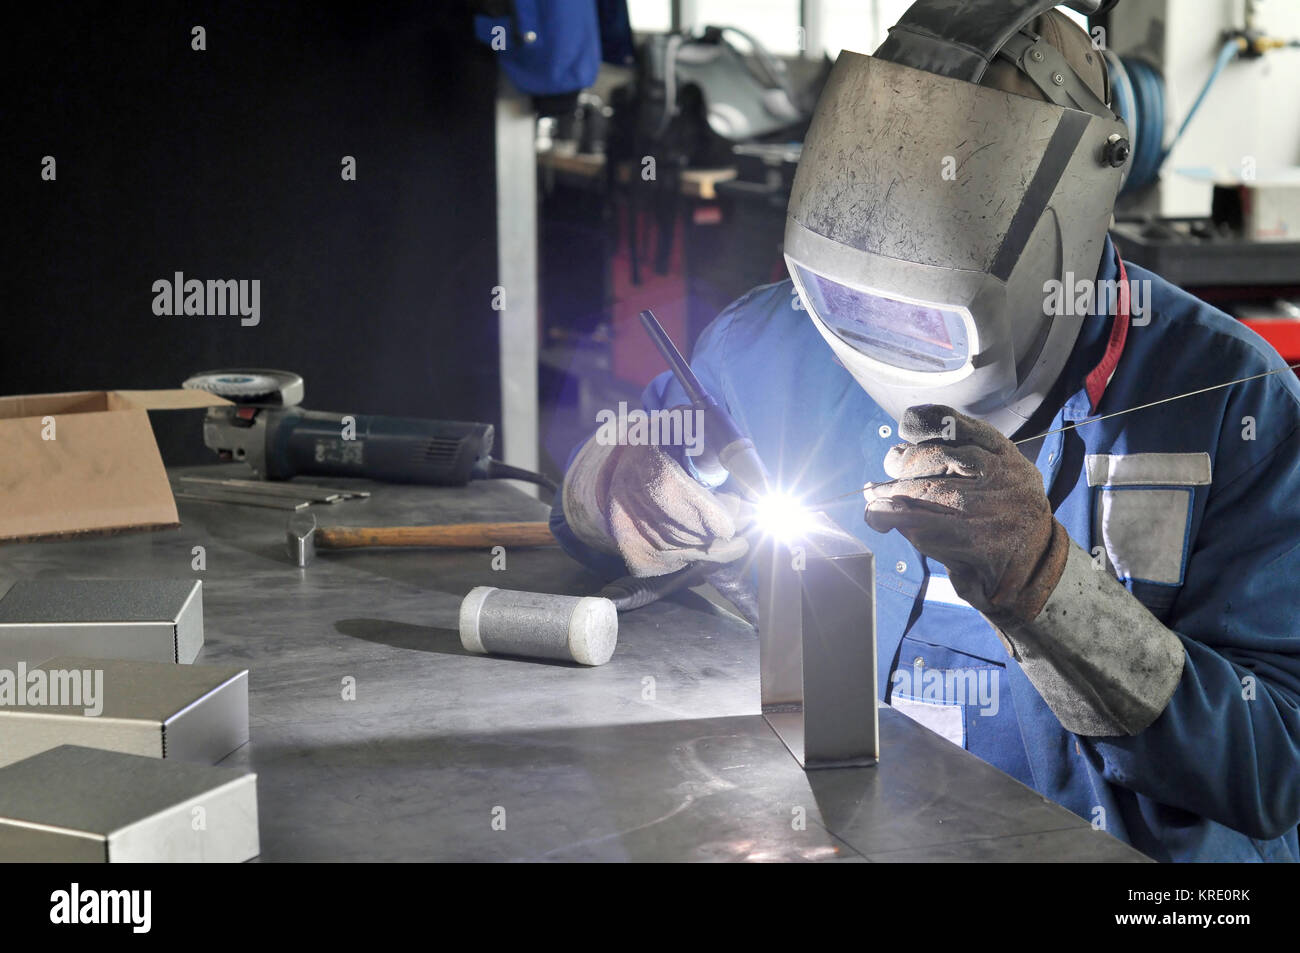 welder works in a metal construction company - Stock Image